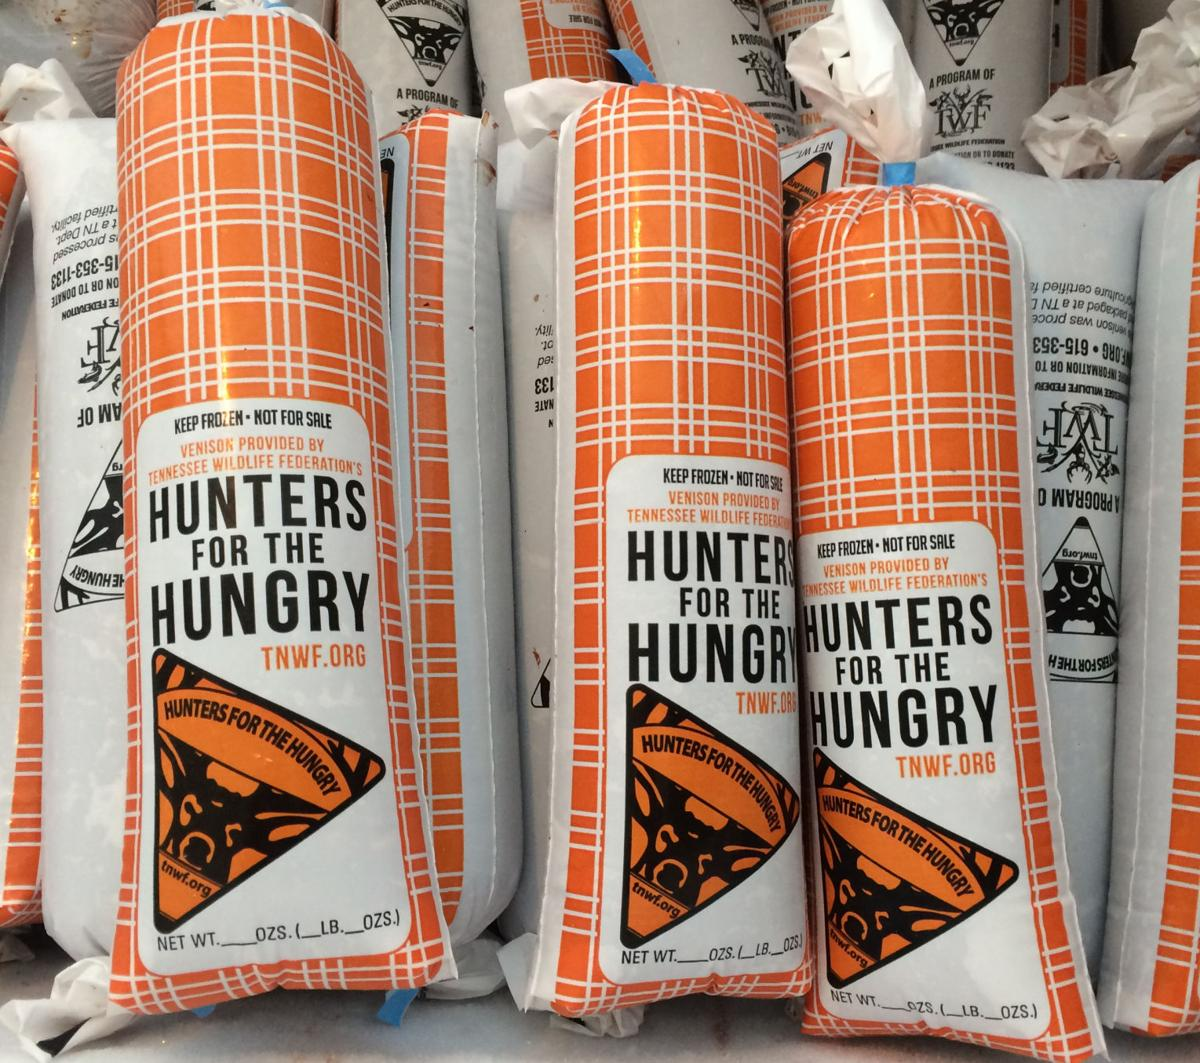 Hunters for Hungry donated venison.jpg